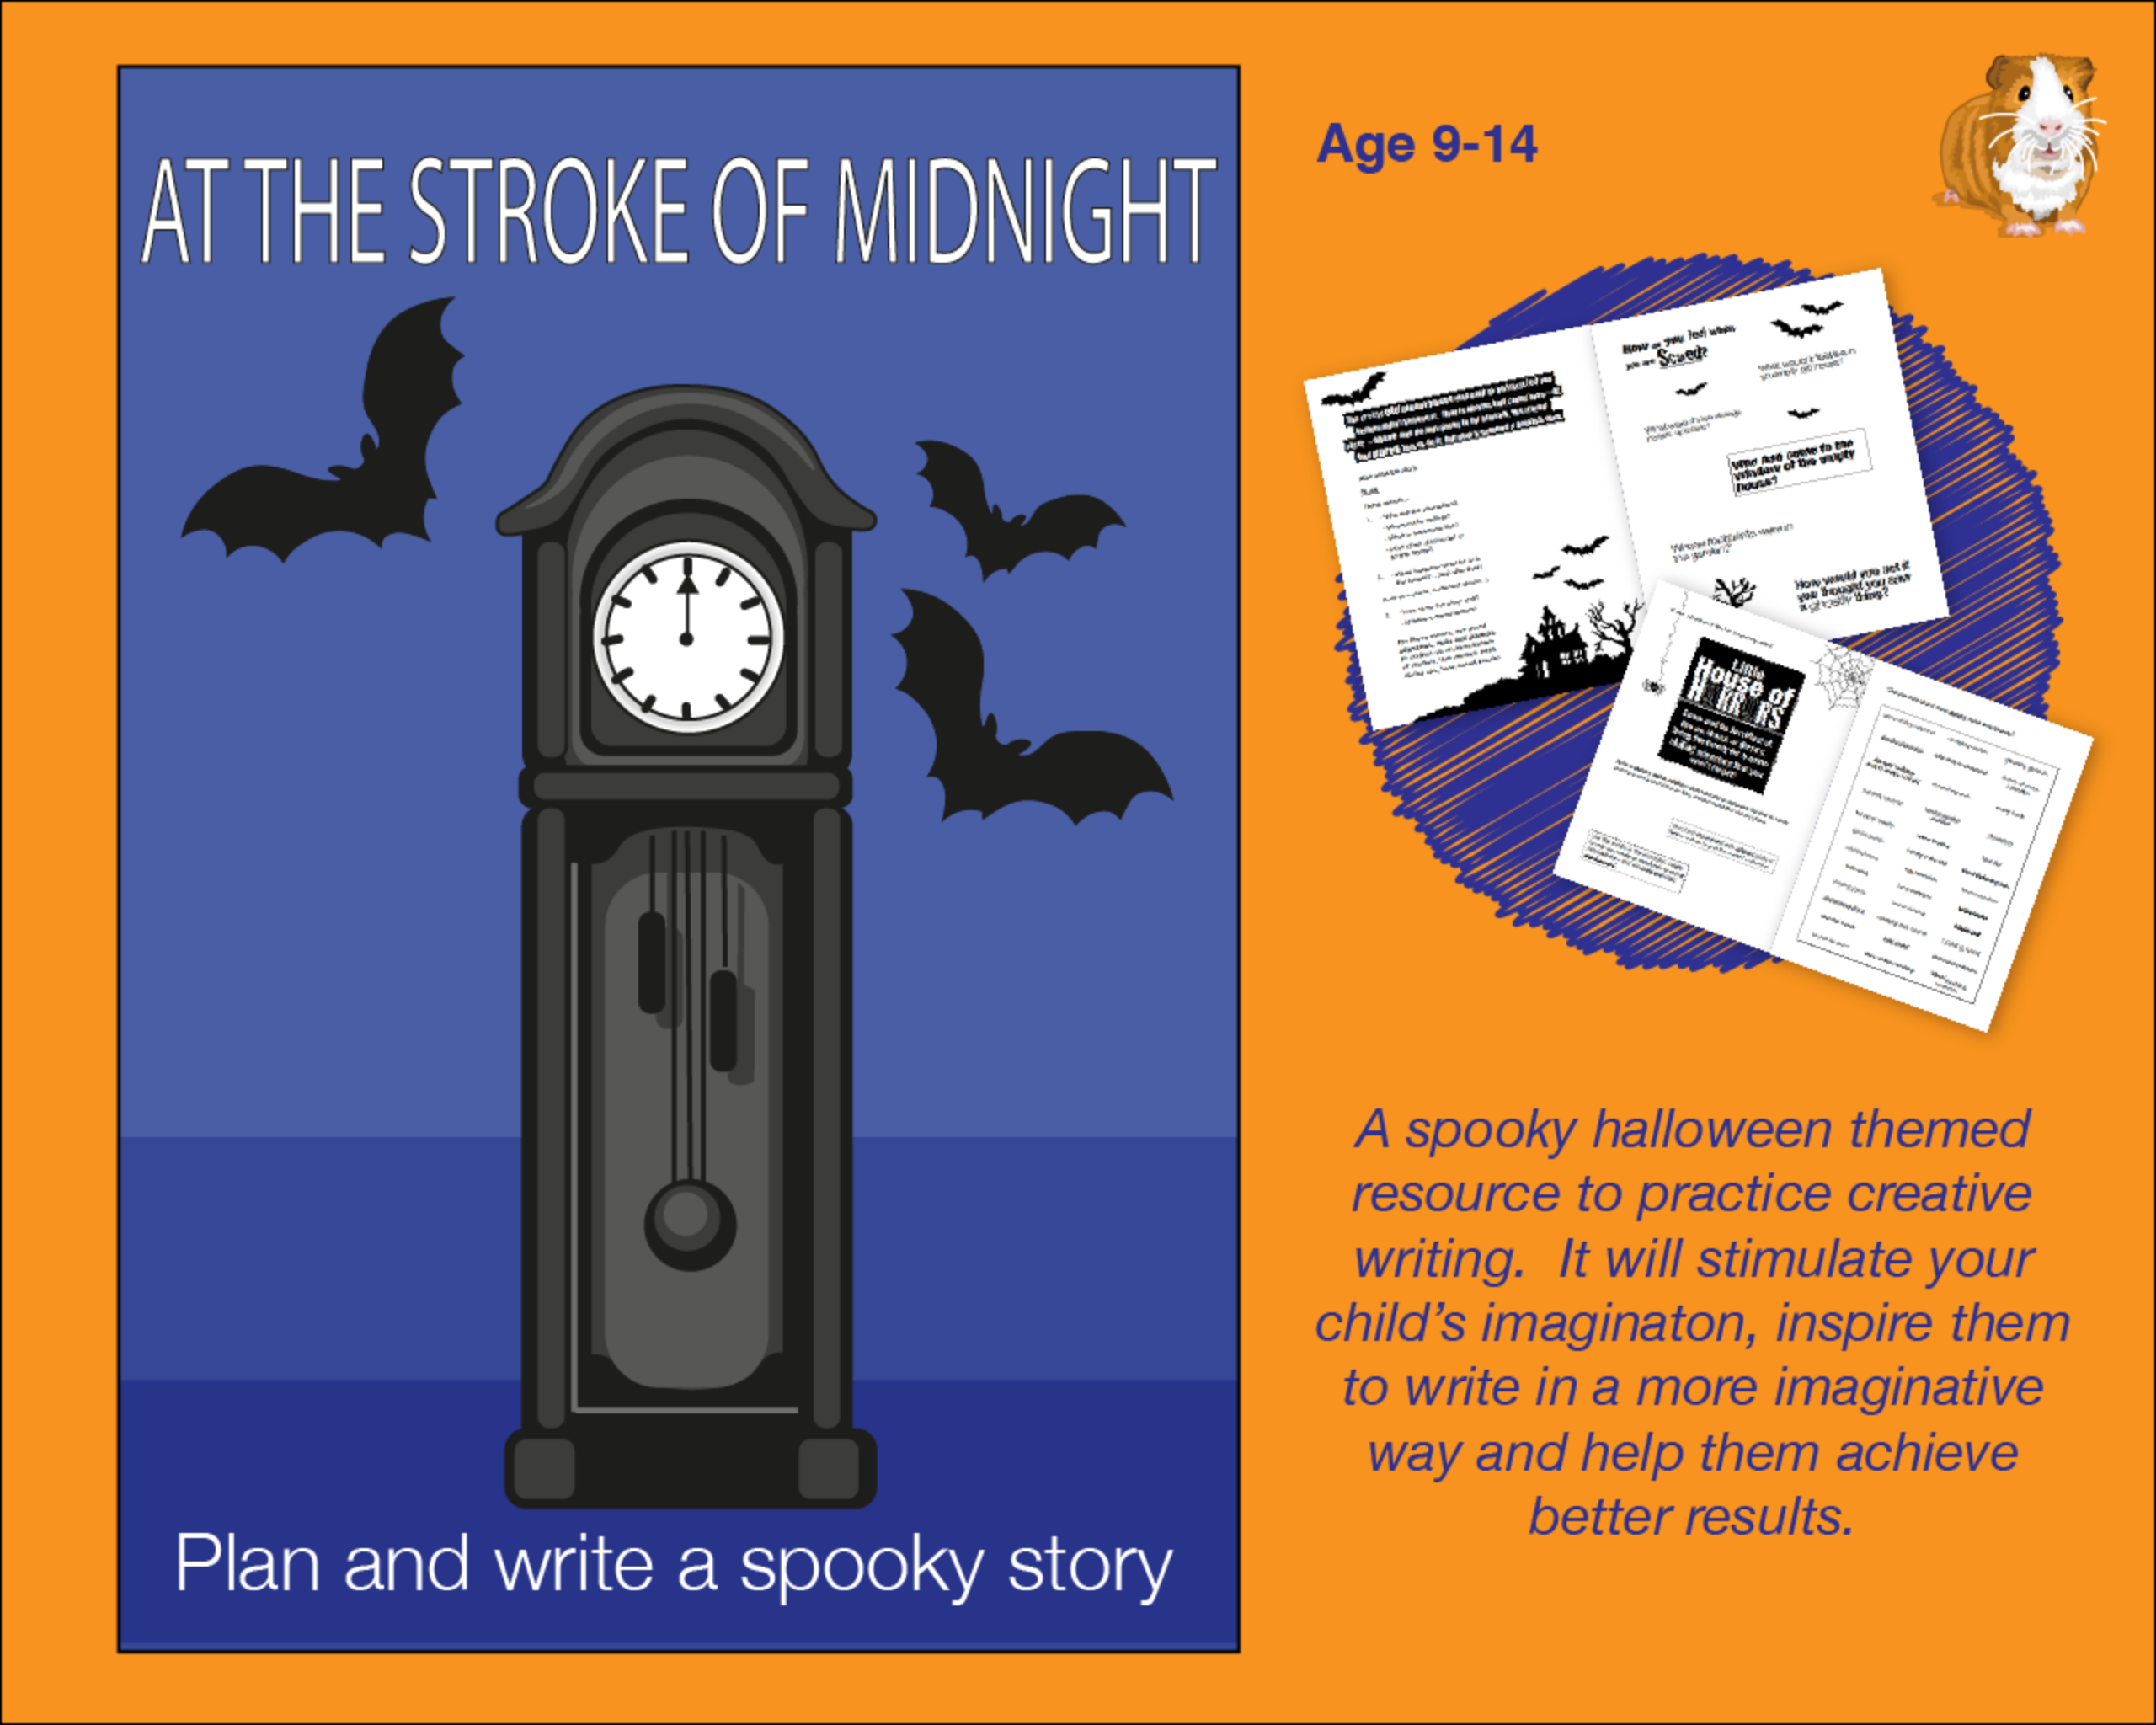 At The Stroke Of Midnight: A Spooky Halloween Themed Resource For Creative Writing